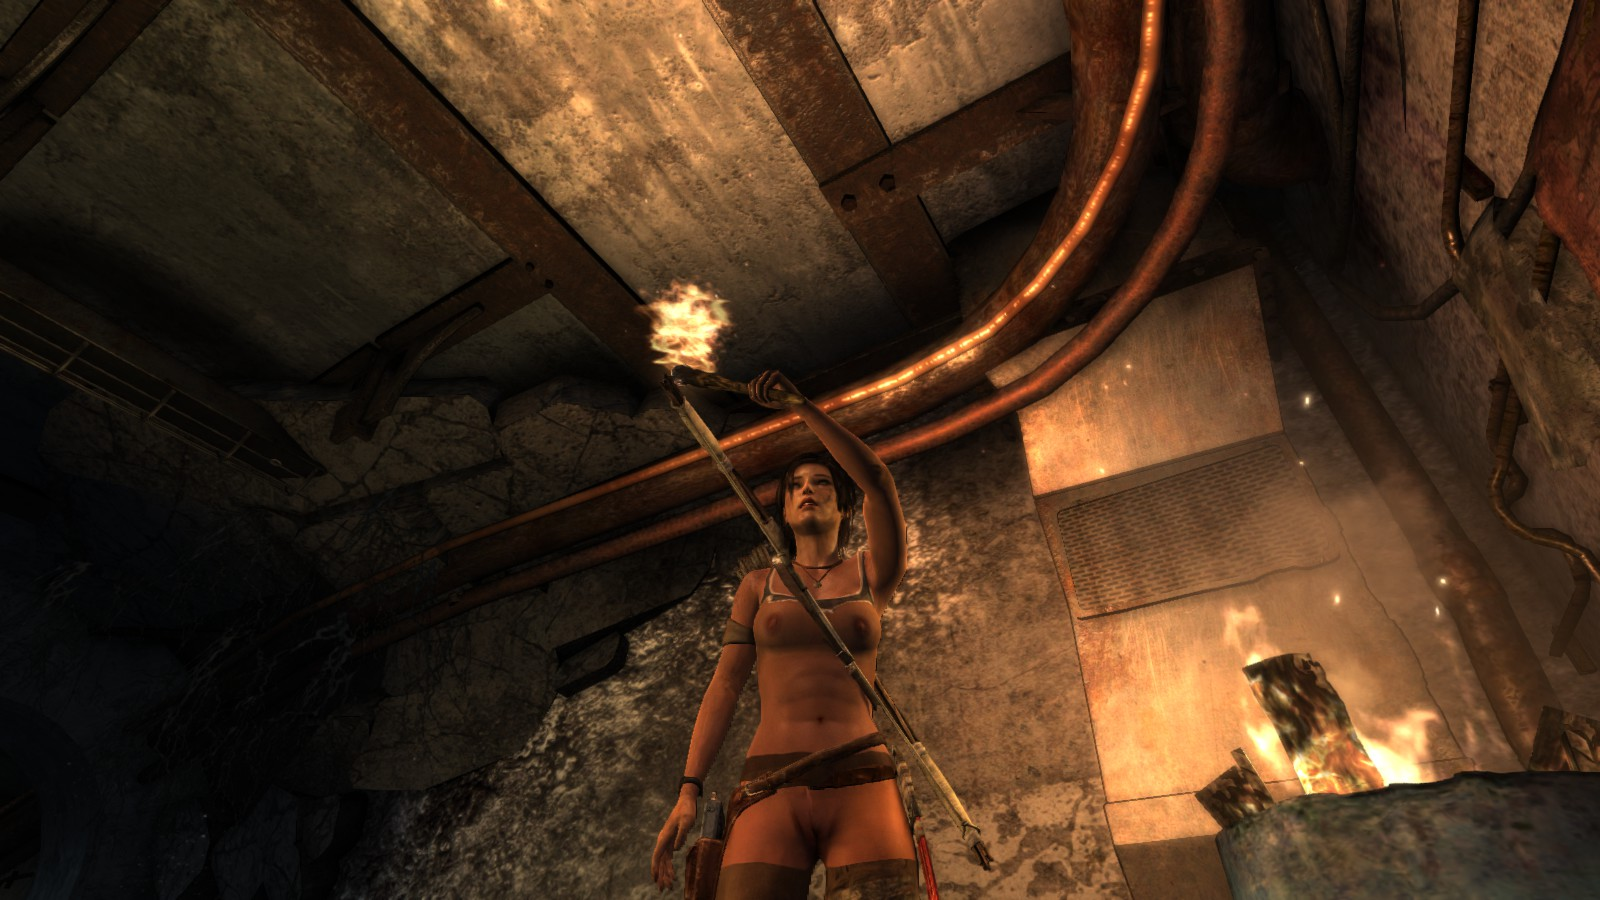 Tomb raider legend naked patch smut pic